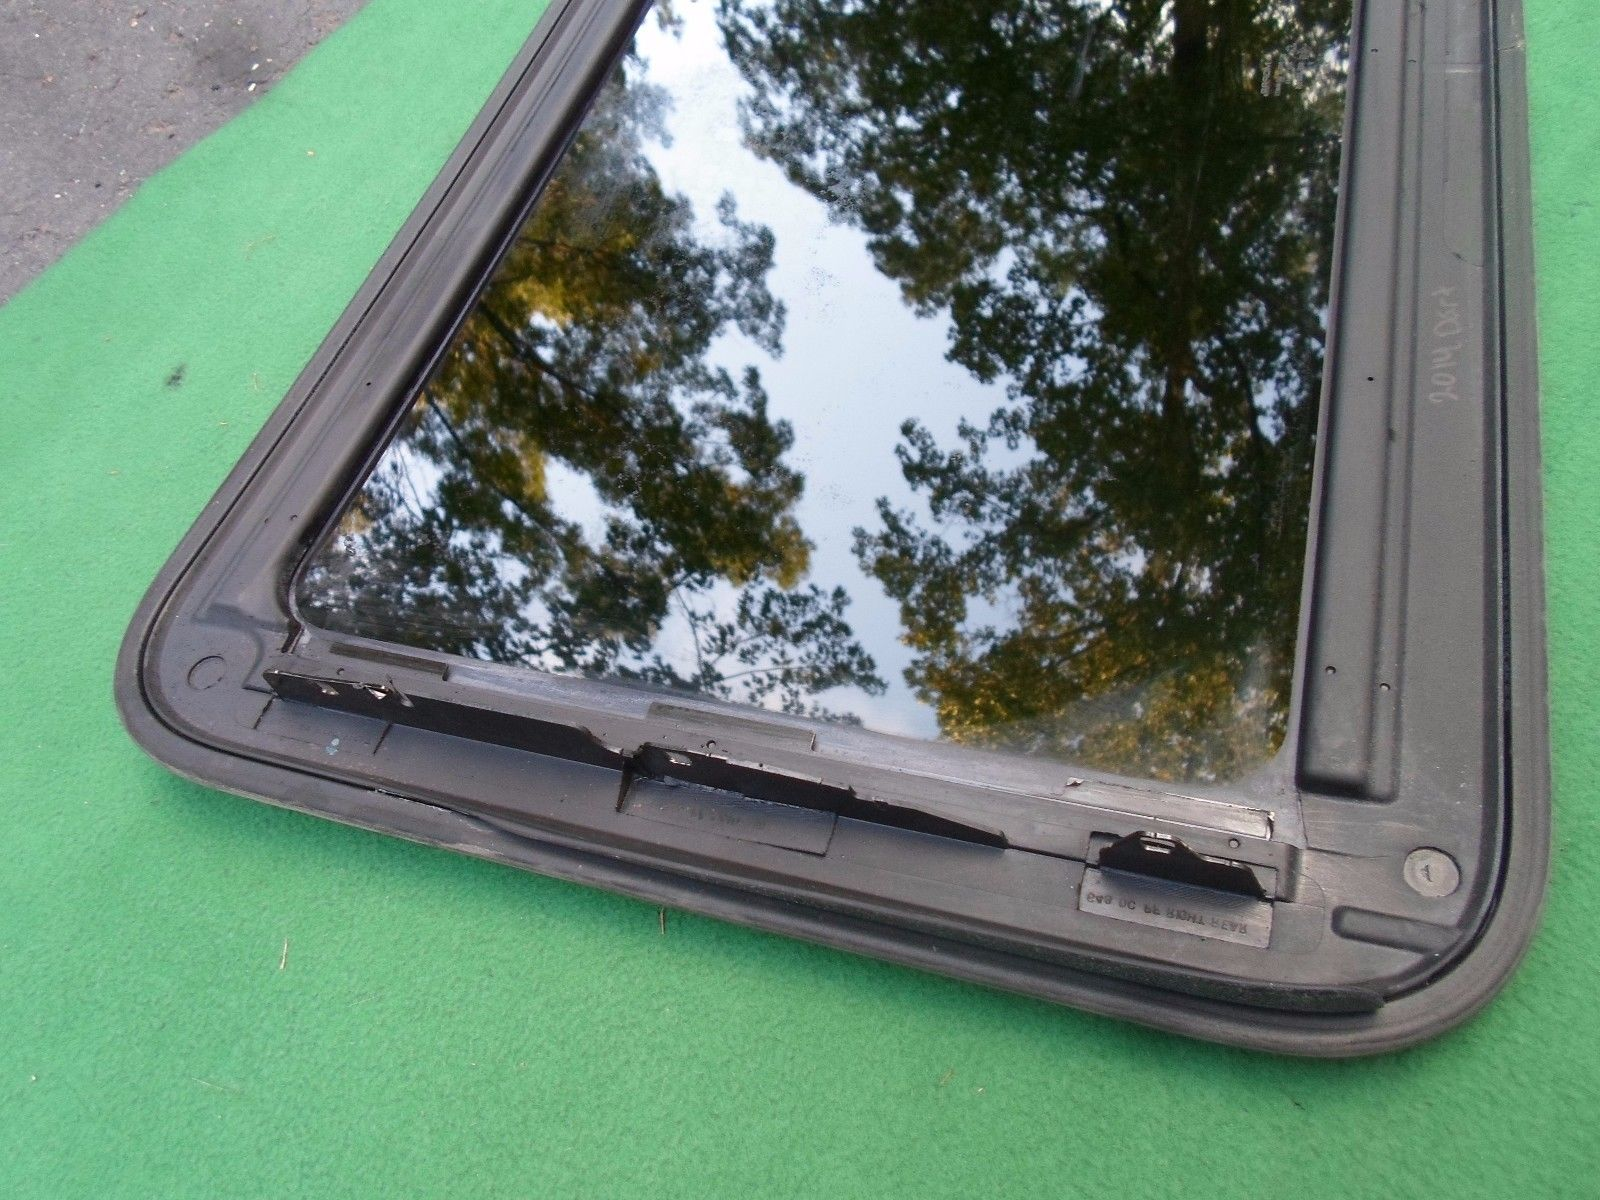 2013 DODGE DART OEM FACTORY YEAR SPECIFIC SUNROOF GLASS FREE SHIPPING!  Does Not Apply